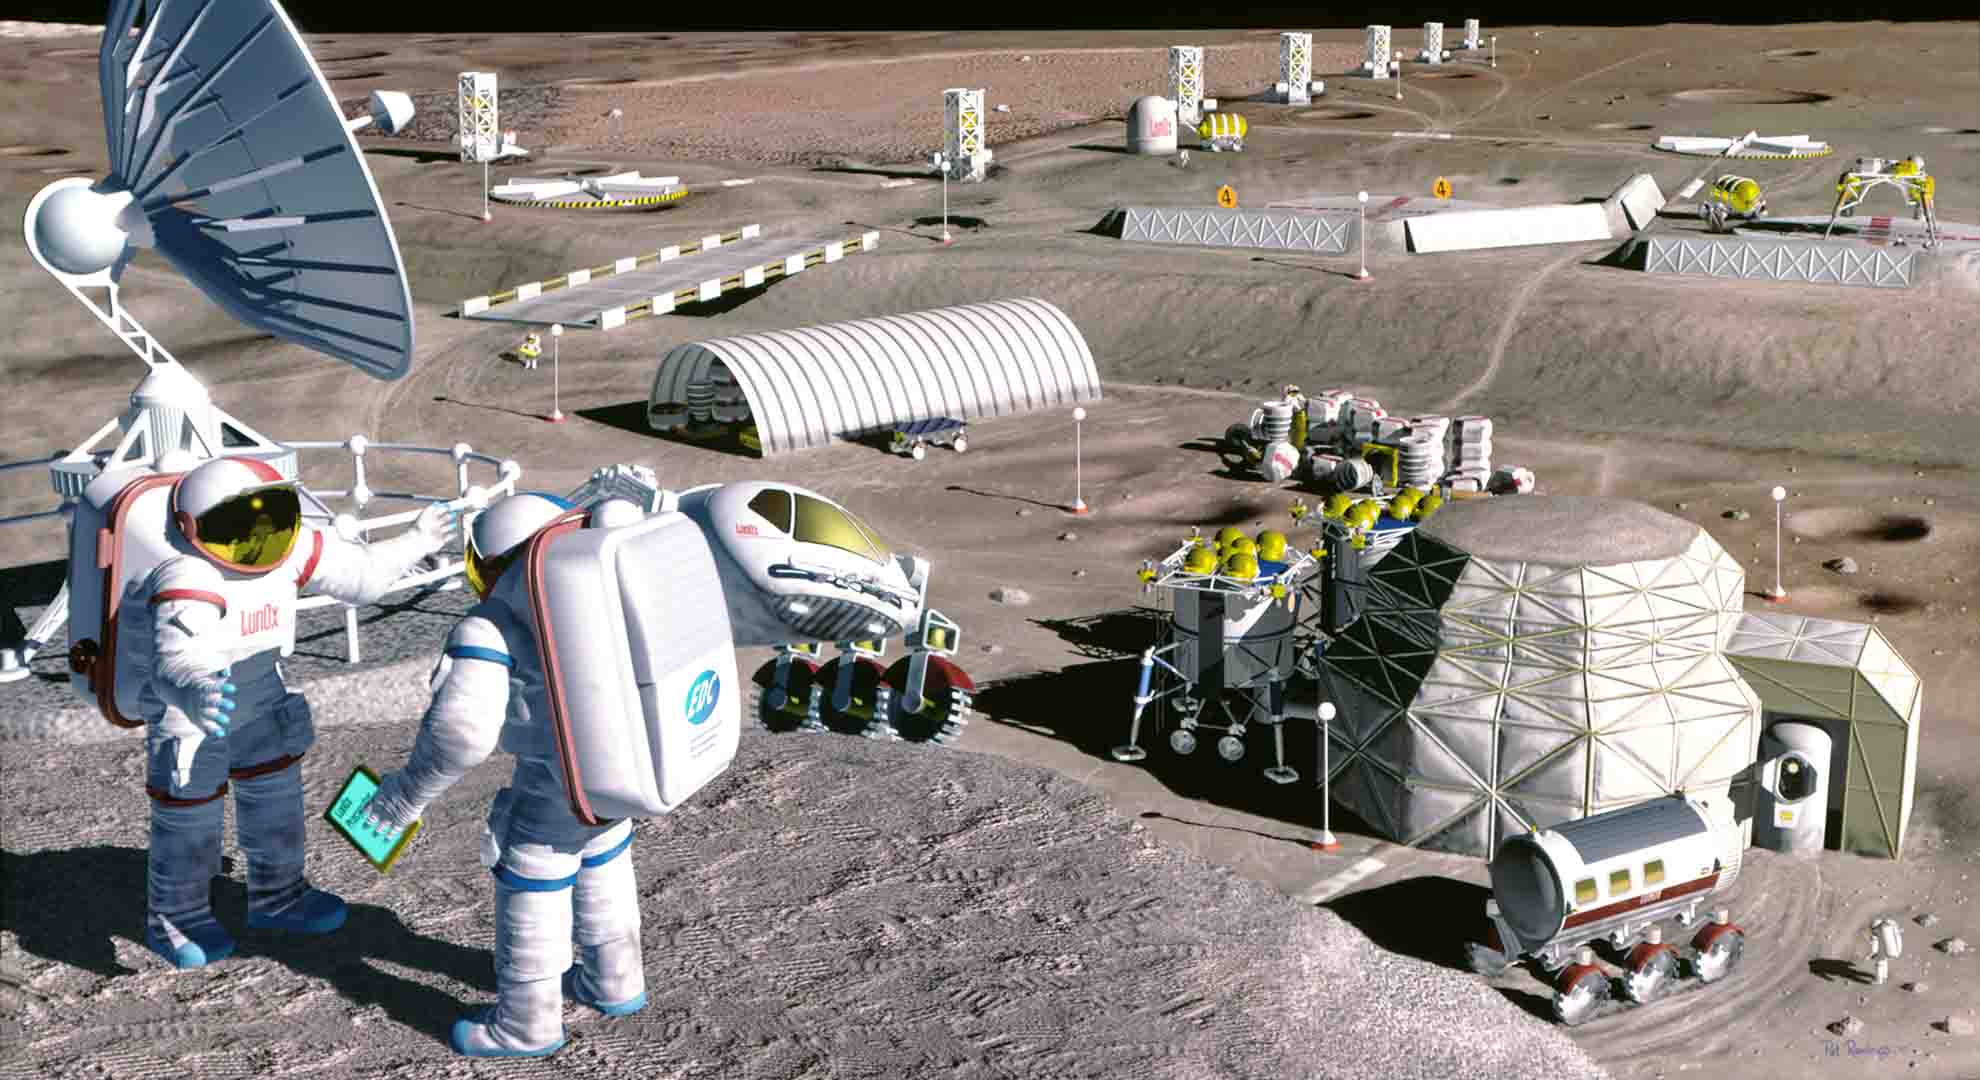 Artist's concept of possible space colony produced for NASA